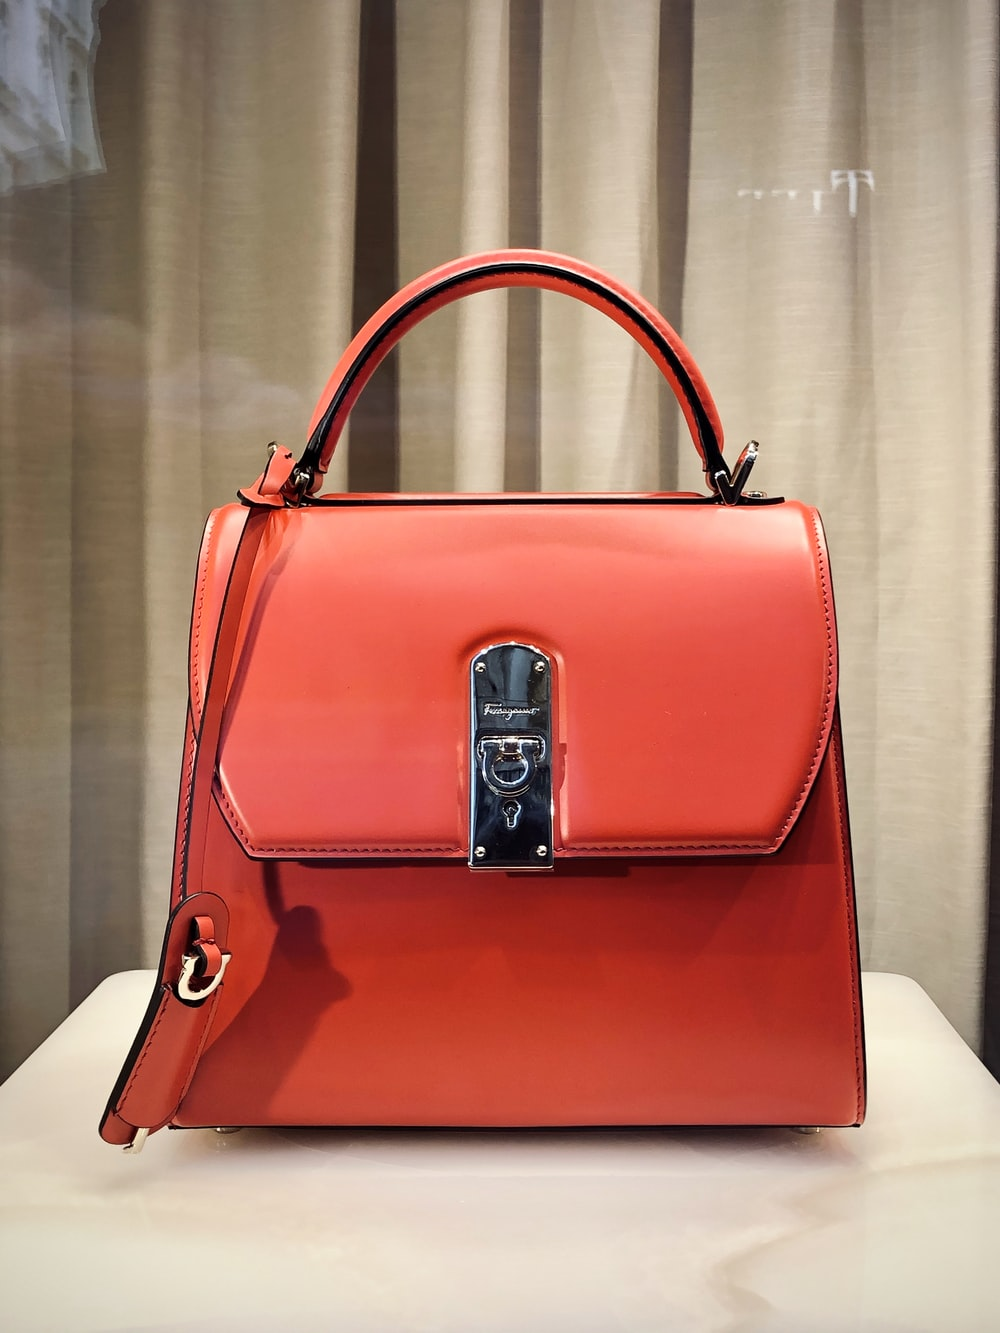 red leather handbag on white table